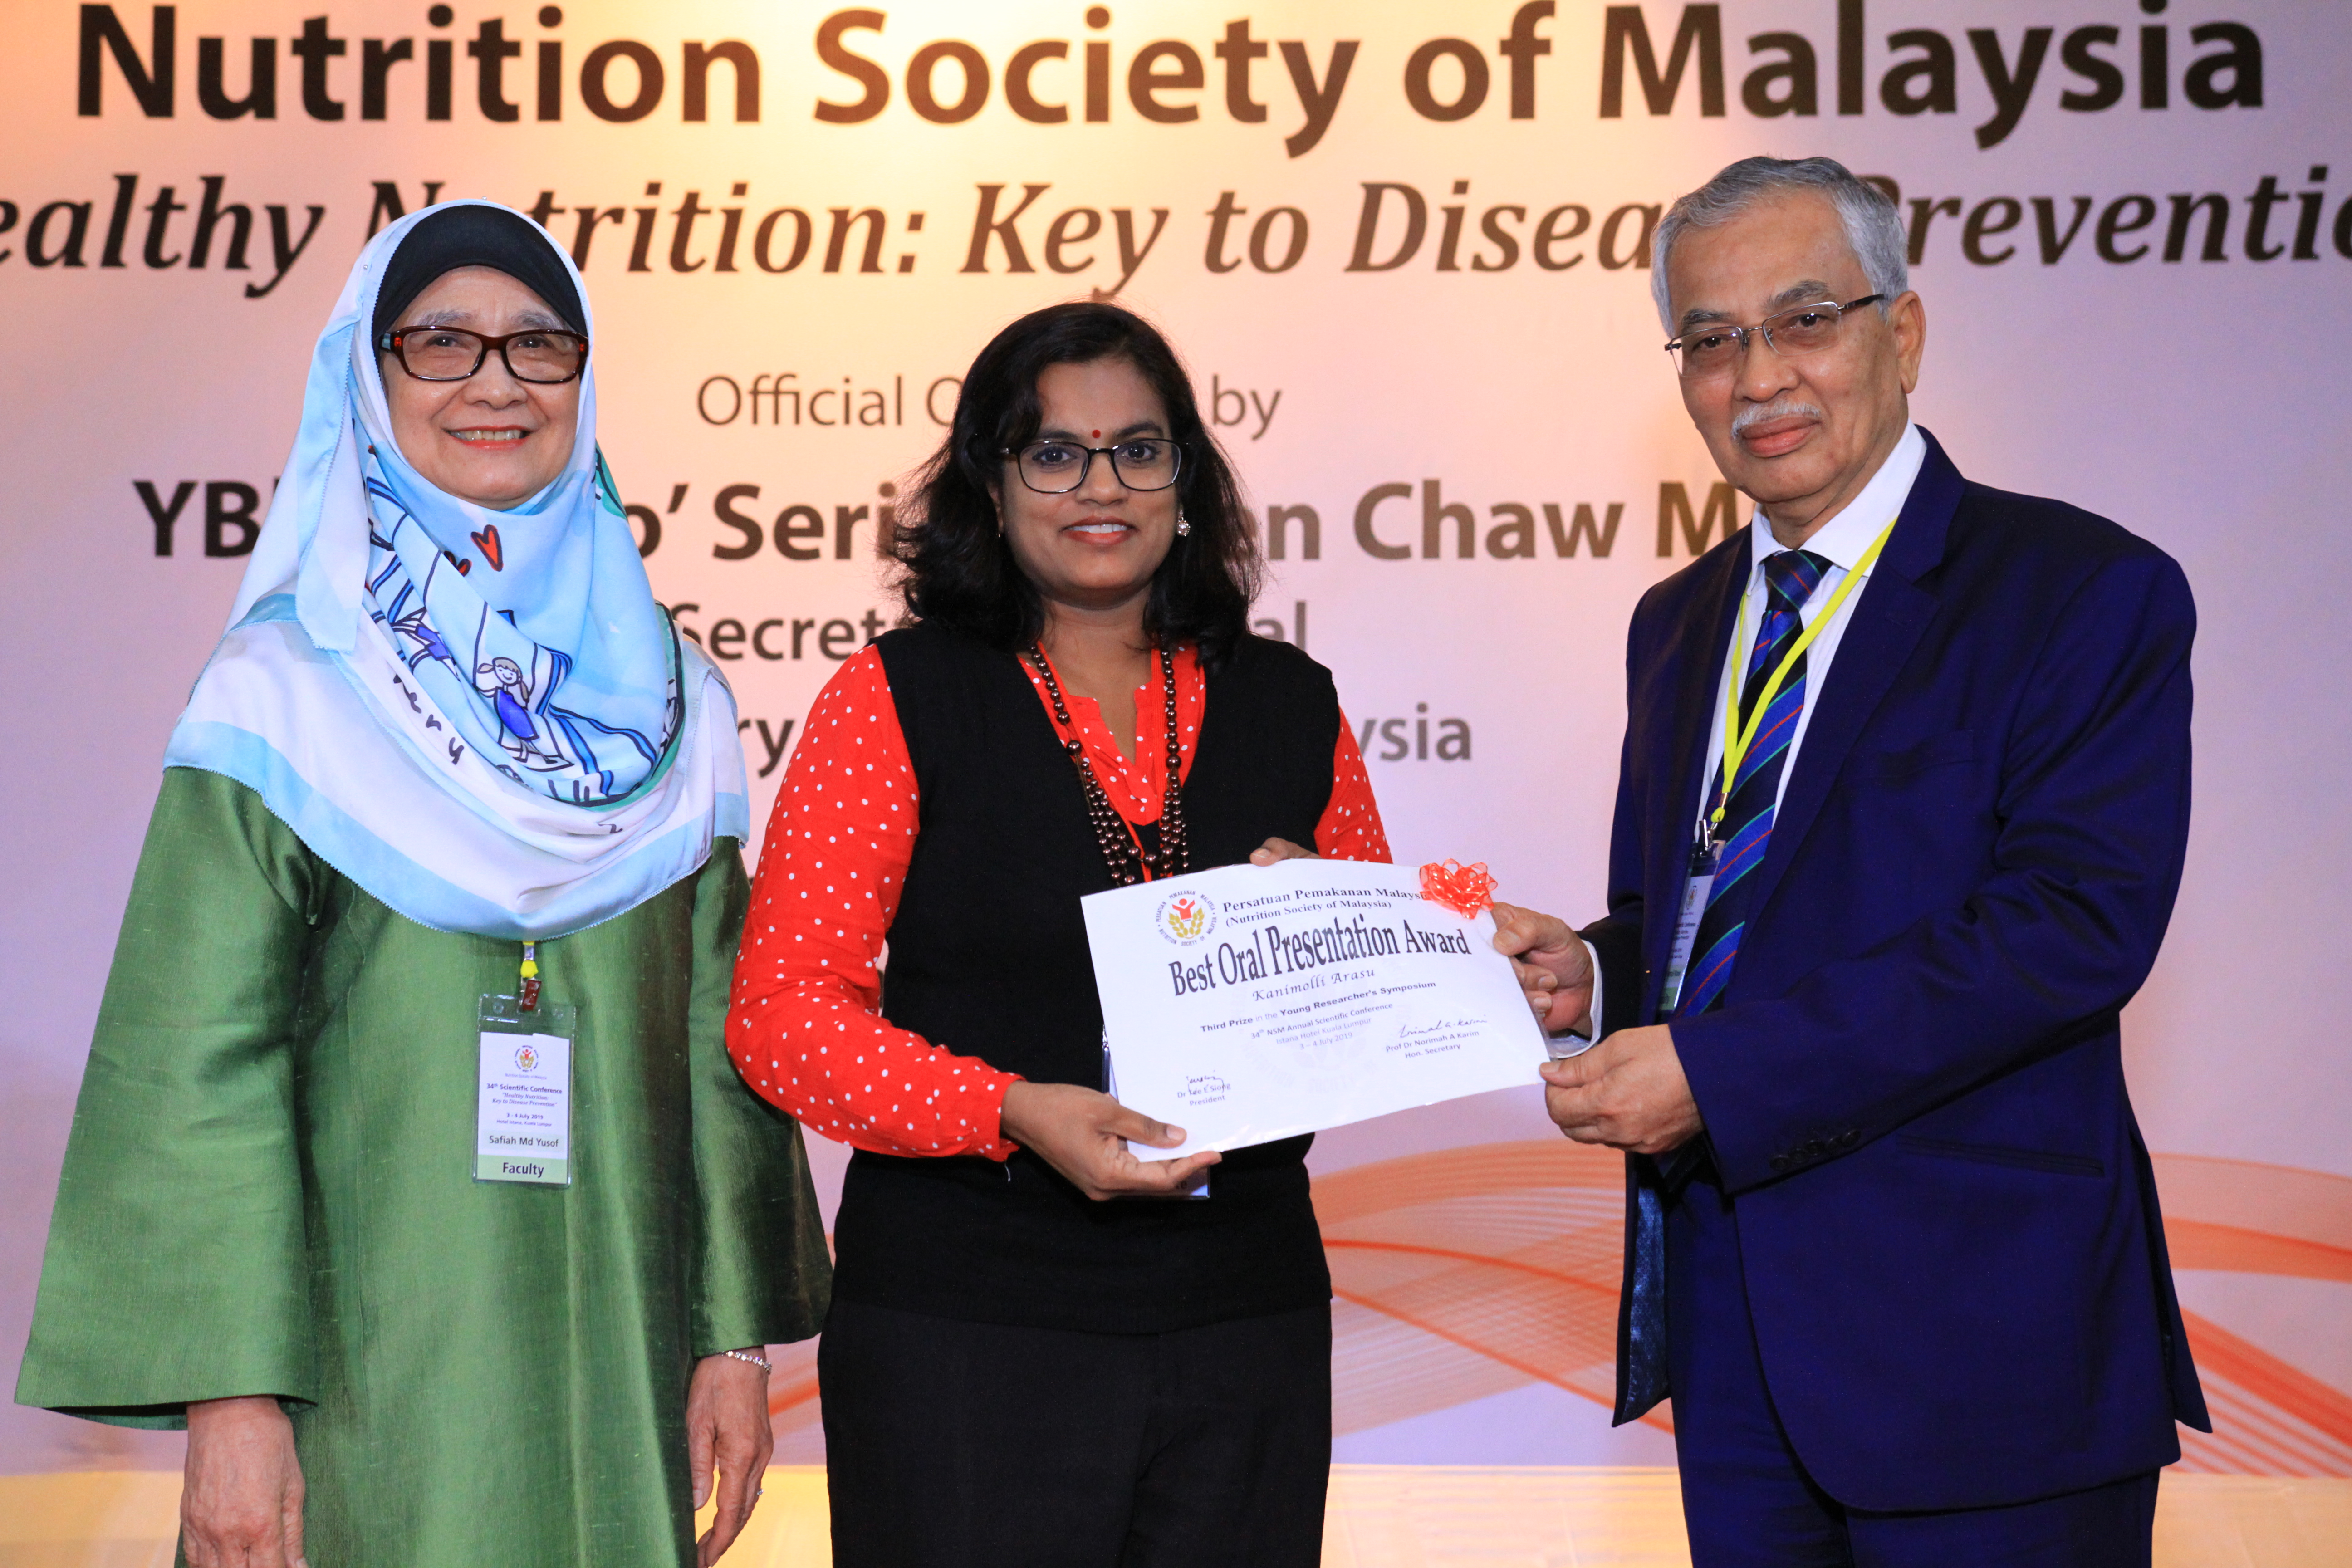 IMU faculty and students' success at the 34th Nutrition Society Malaysia Conference.